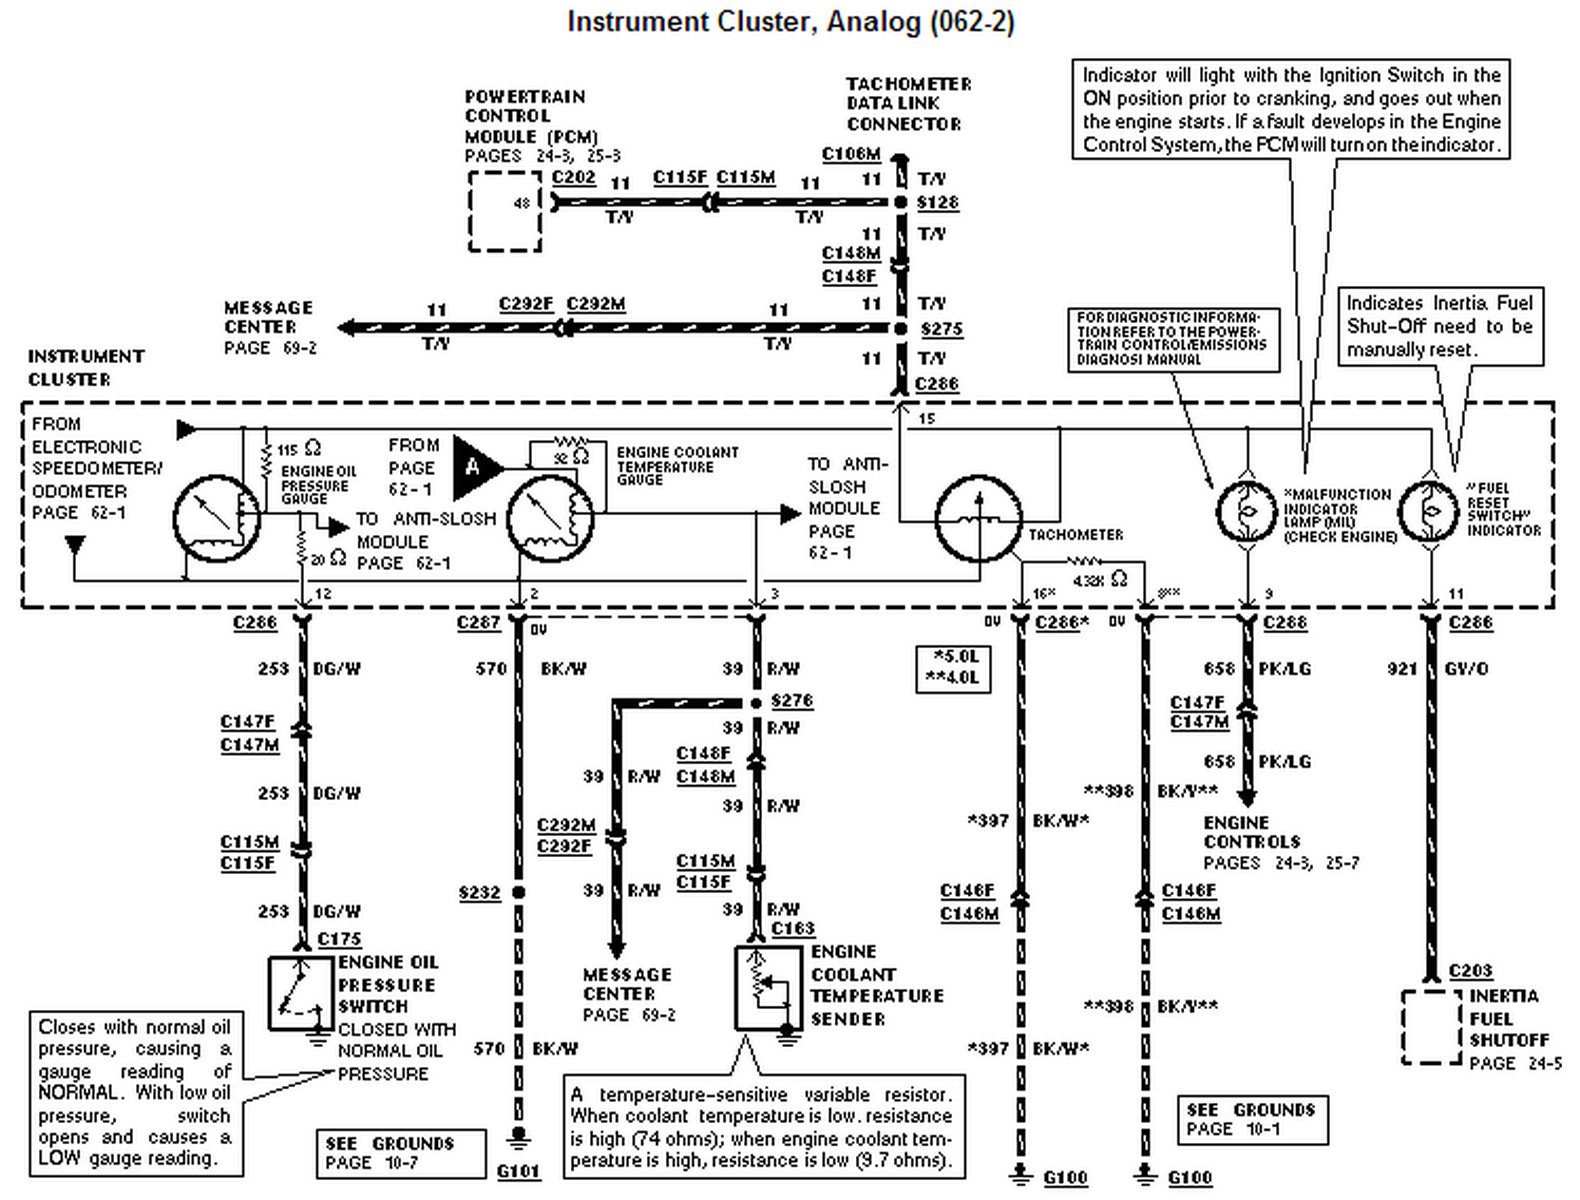 1965 ford f100 dash wiring diagram 1993 ford explorer dash wiring diagram ford explorer questions - 2013 explorer base electrical ... #15